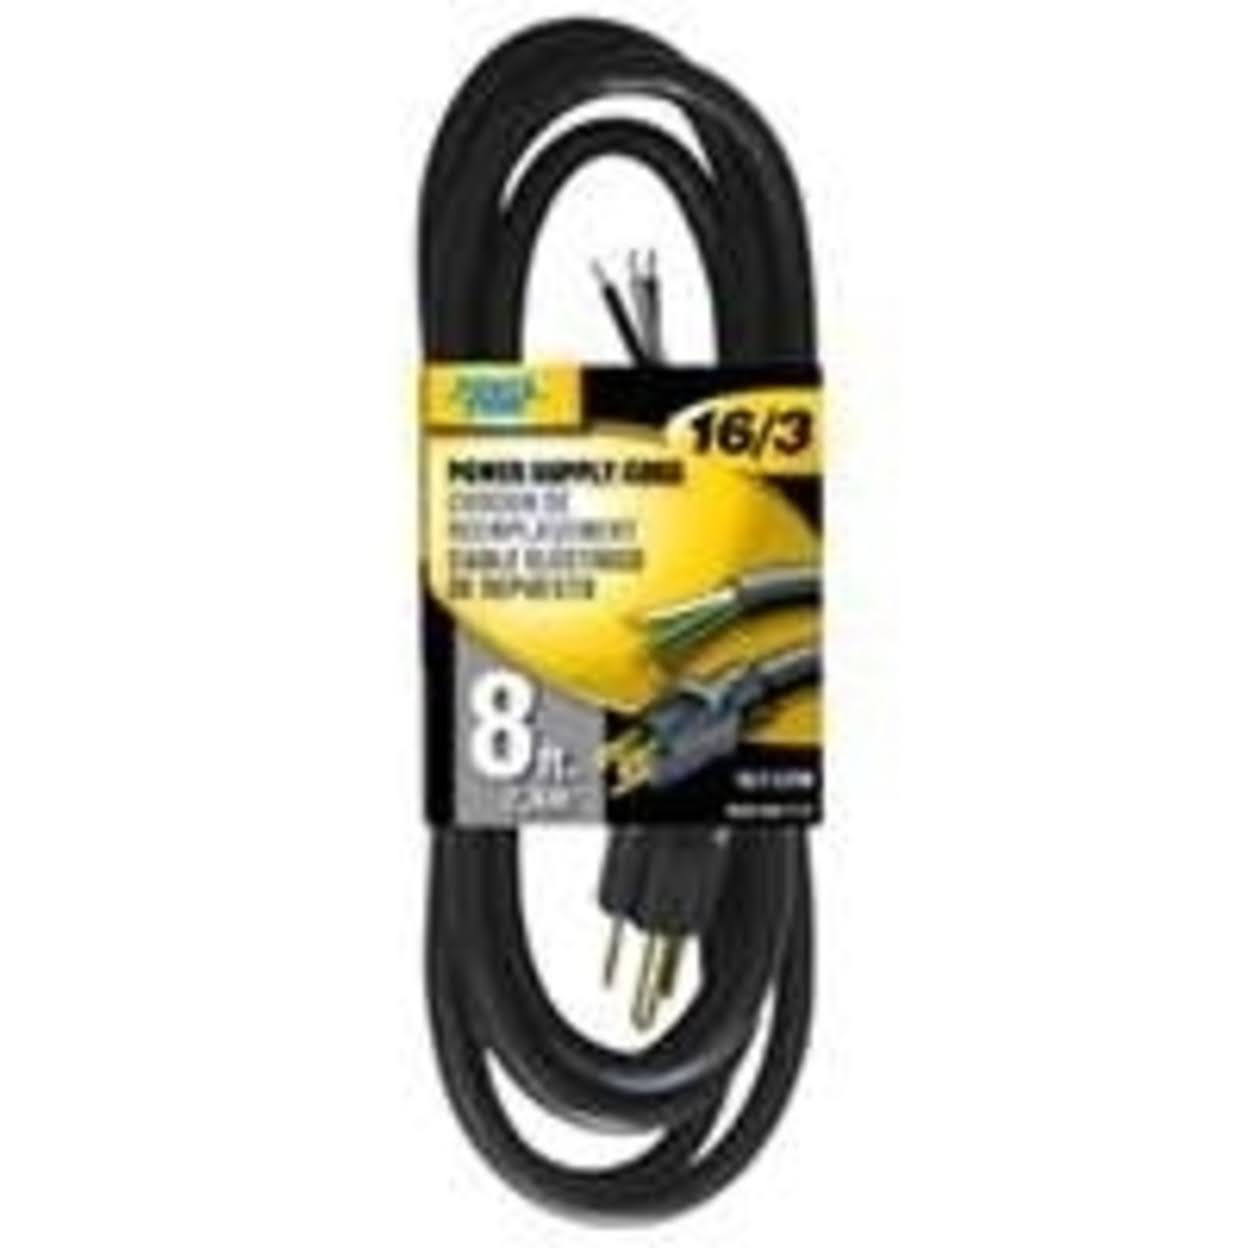 Power Zone Power Supply Cord - Black, 8ft